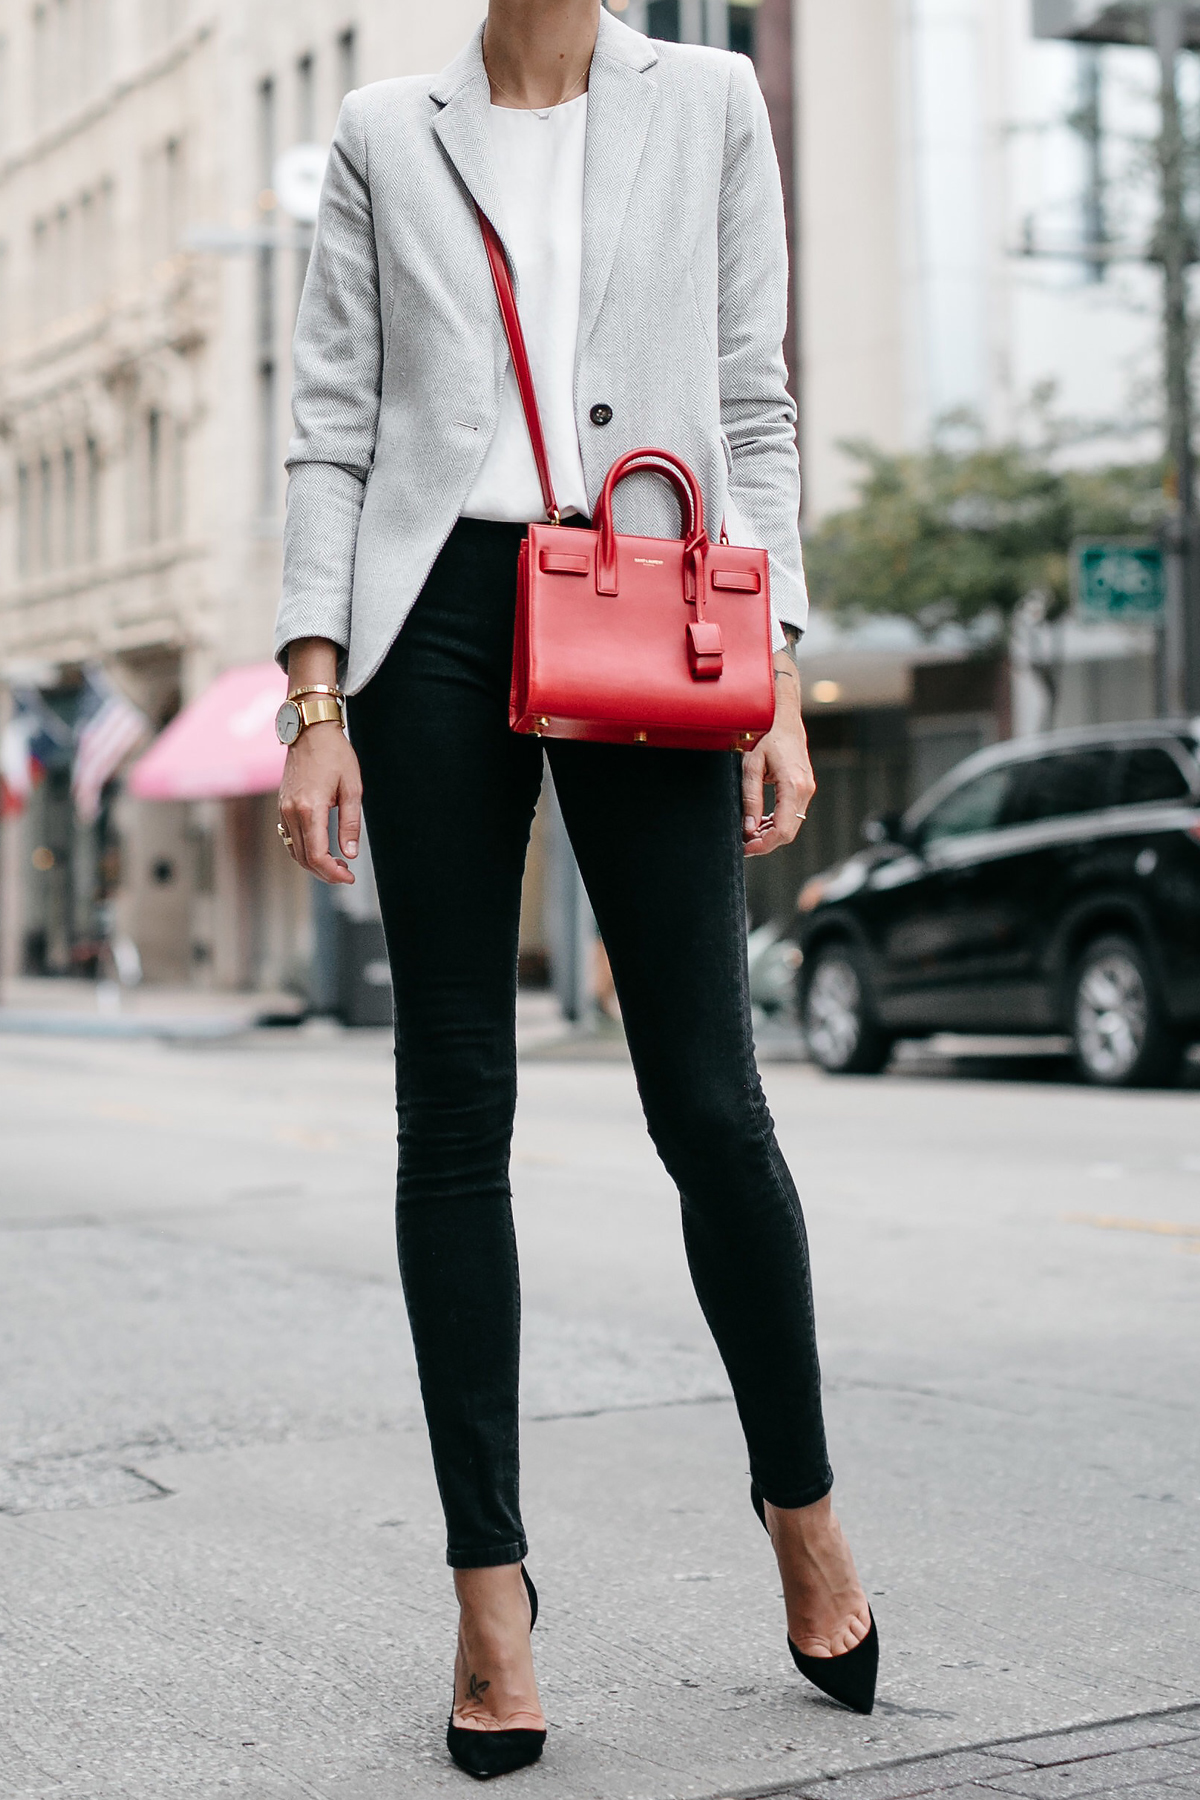 Grey Blazer White Top Black Skinny Jeans Black Pumps Saint Laurent Sac de Jour Nano Red Fashion Jackson Dallas Blogger Fashion Blogger Street Style